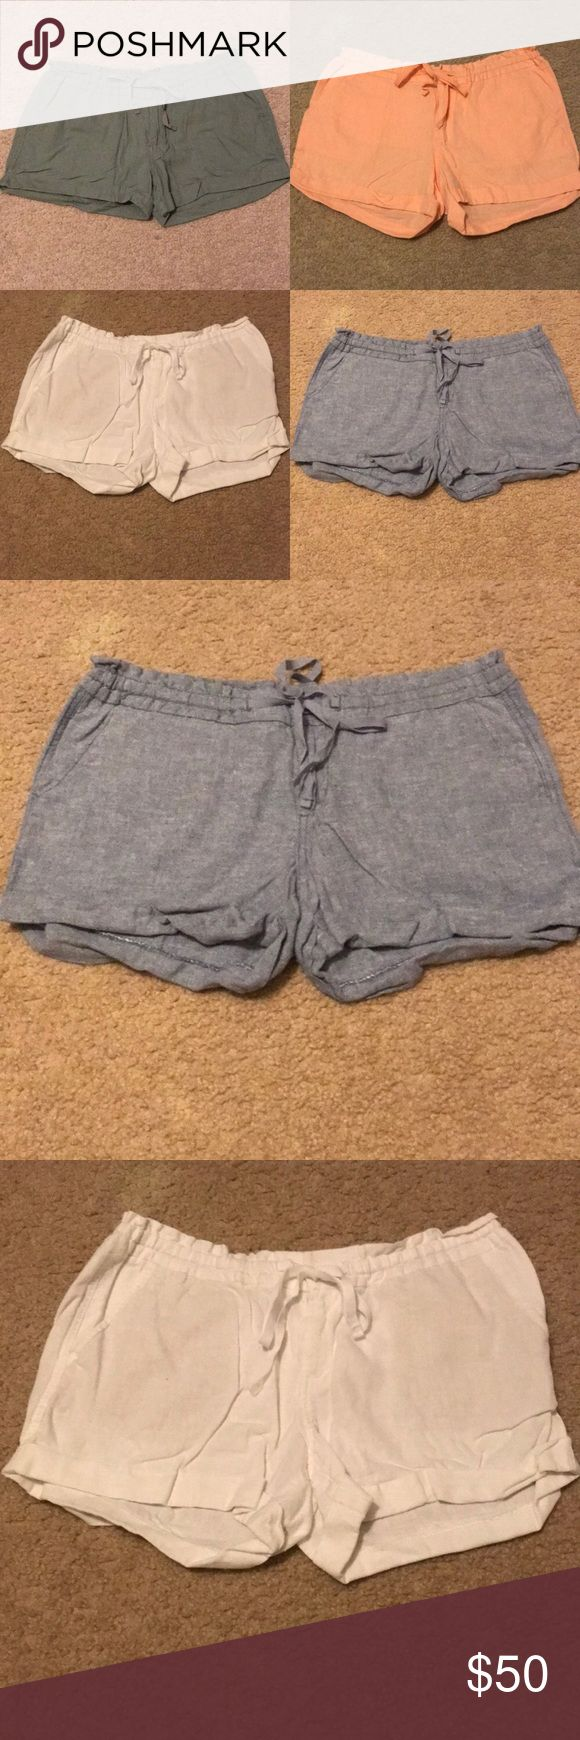 4 Pair of Linen Shorts from Old Navy They are all in good condition. If you don't want them all they are listed individually in my closet. Price firm on this bundle.  My clothes that have been worn have been washed, put in the dryer for a few minutes, & then hung to dry the rest of the time.  All the items are from a pet/smoke free home.  Absolutely no trades. Please don't ask! When you purchase more than likely it will ship out the following day. Old Navy Shorts